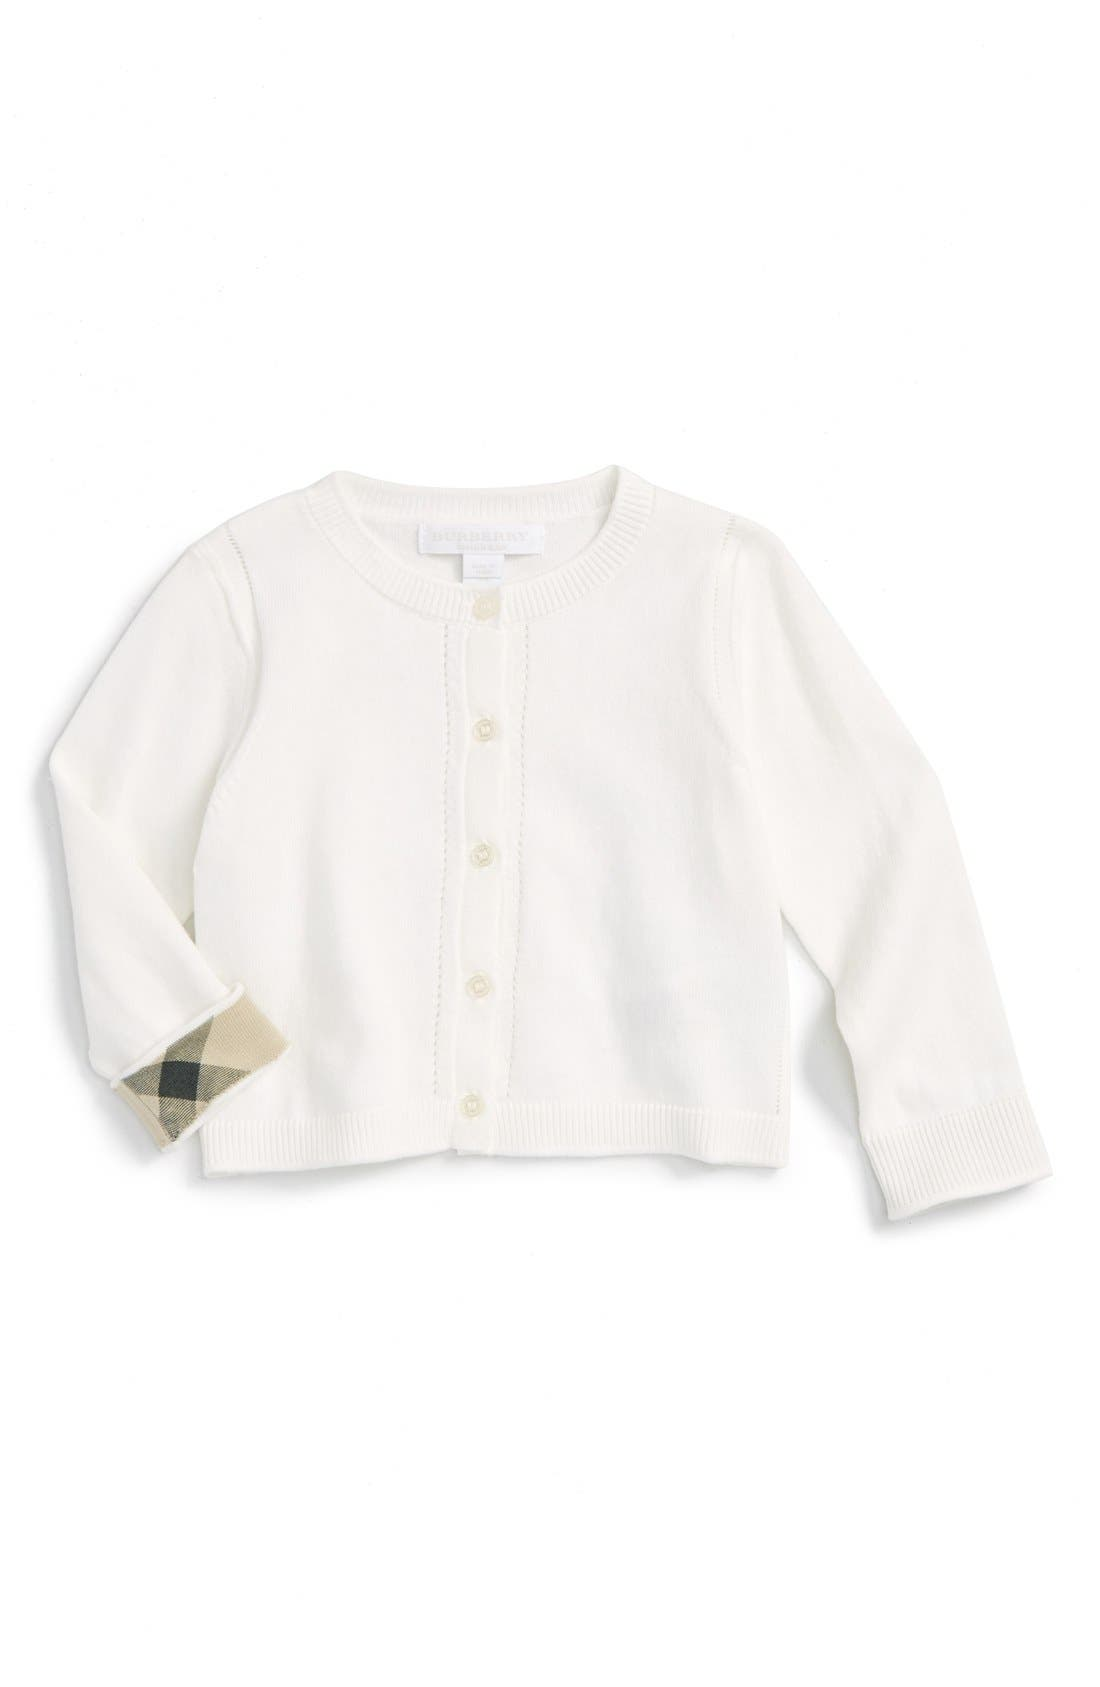 Main Image - Burberry 'Rheta' Cardigan (Baby Girls)